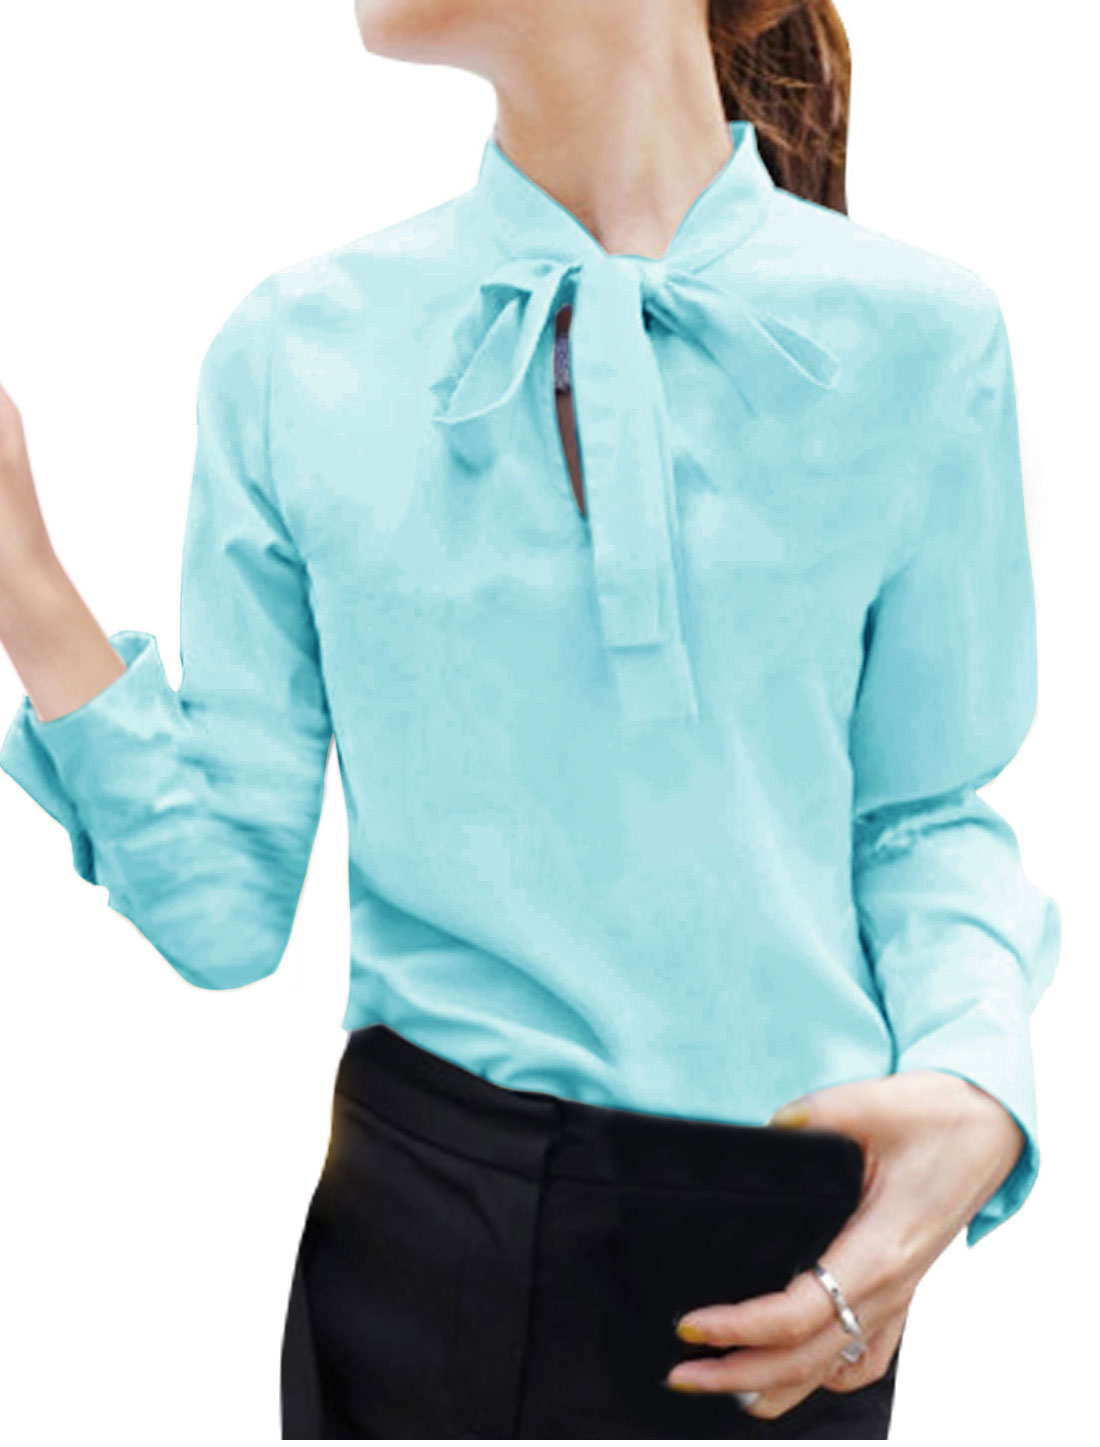 Women Tie Bow Neck Long Sleeves Casual Blouse Blue S